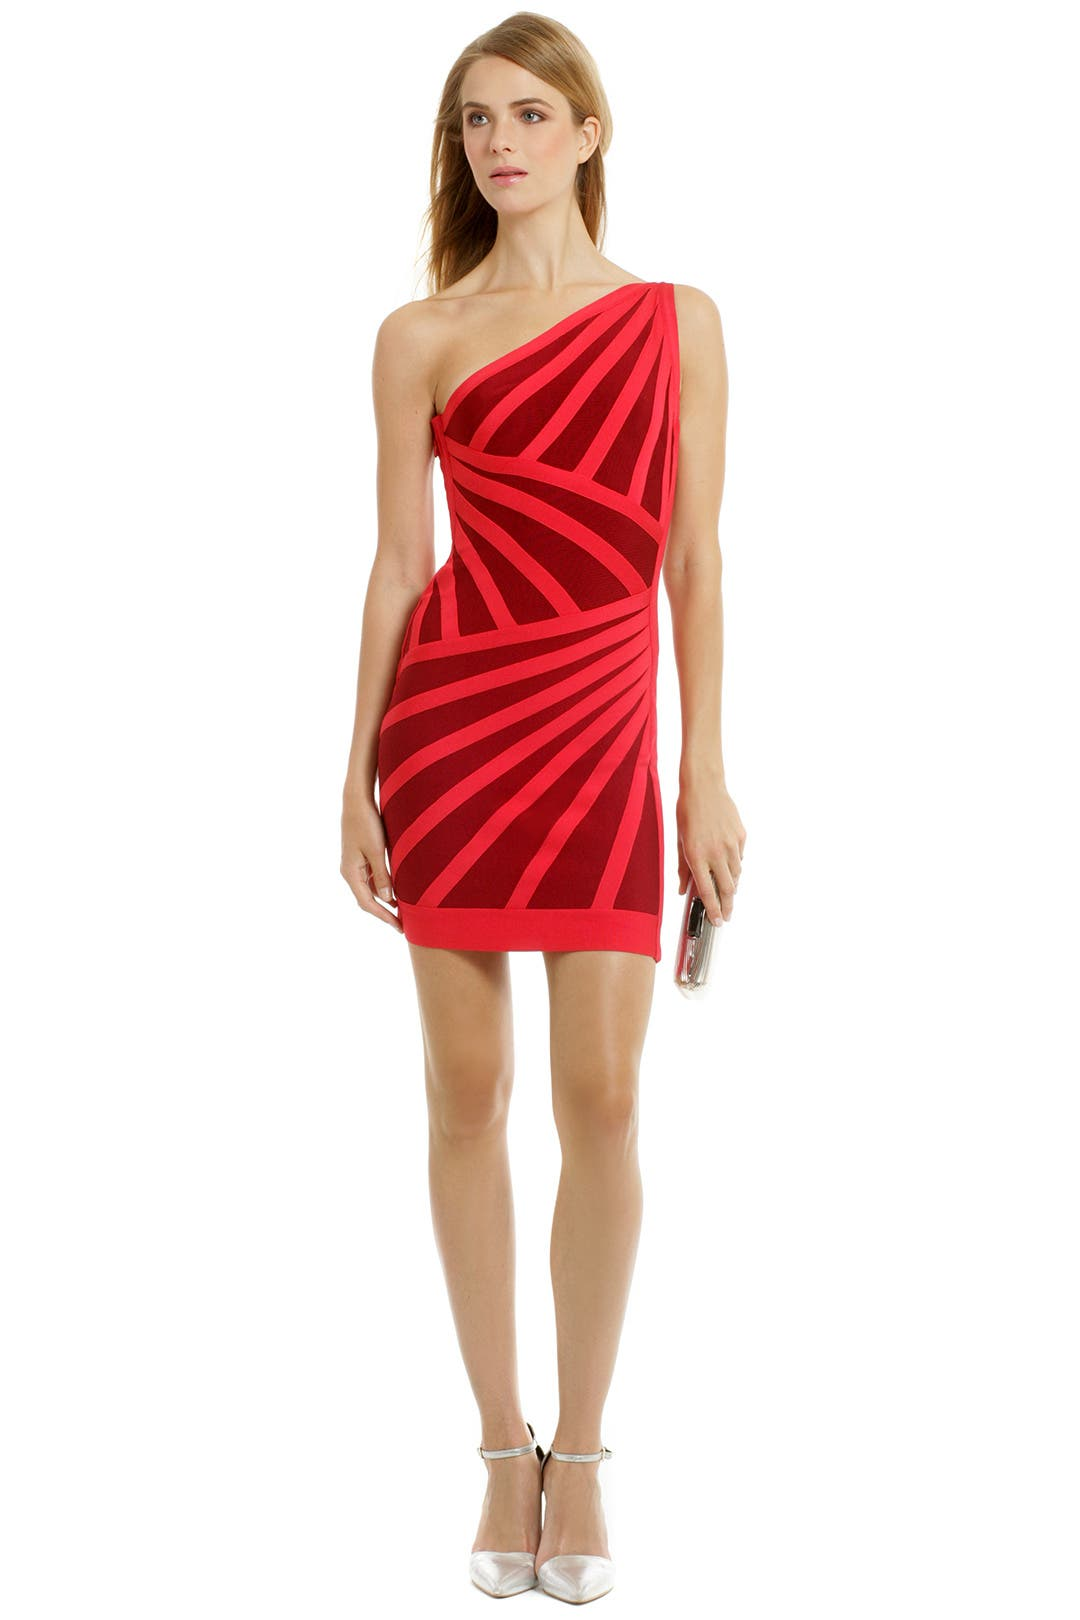 Crimson Sunset Sheath by Hervé Léger for $35 - $50 | Rent the Runway